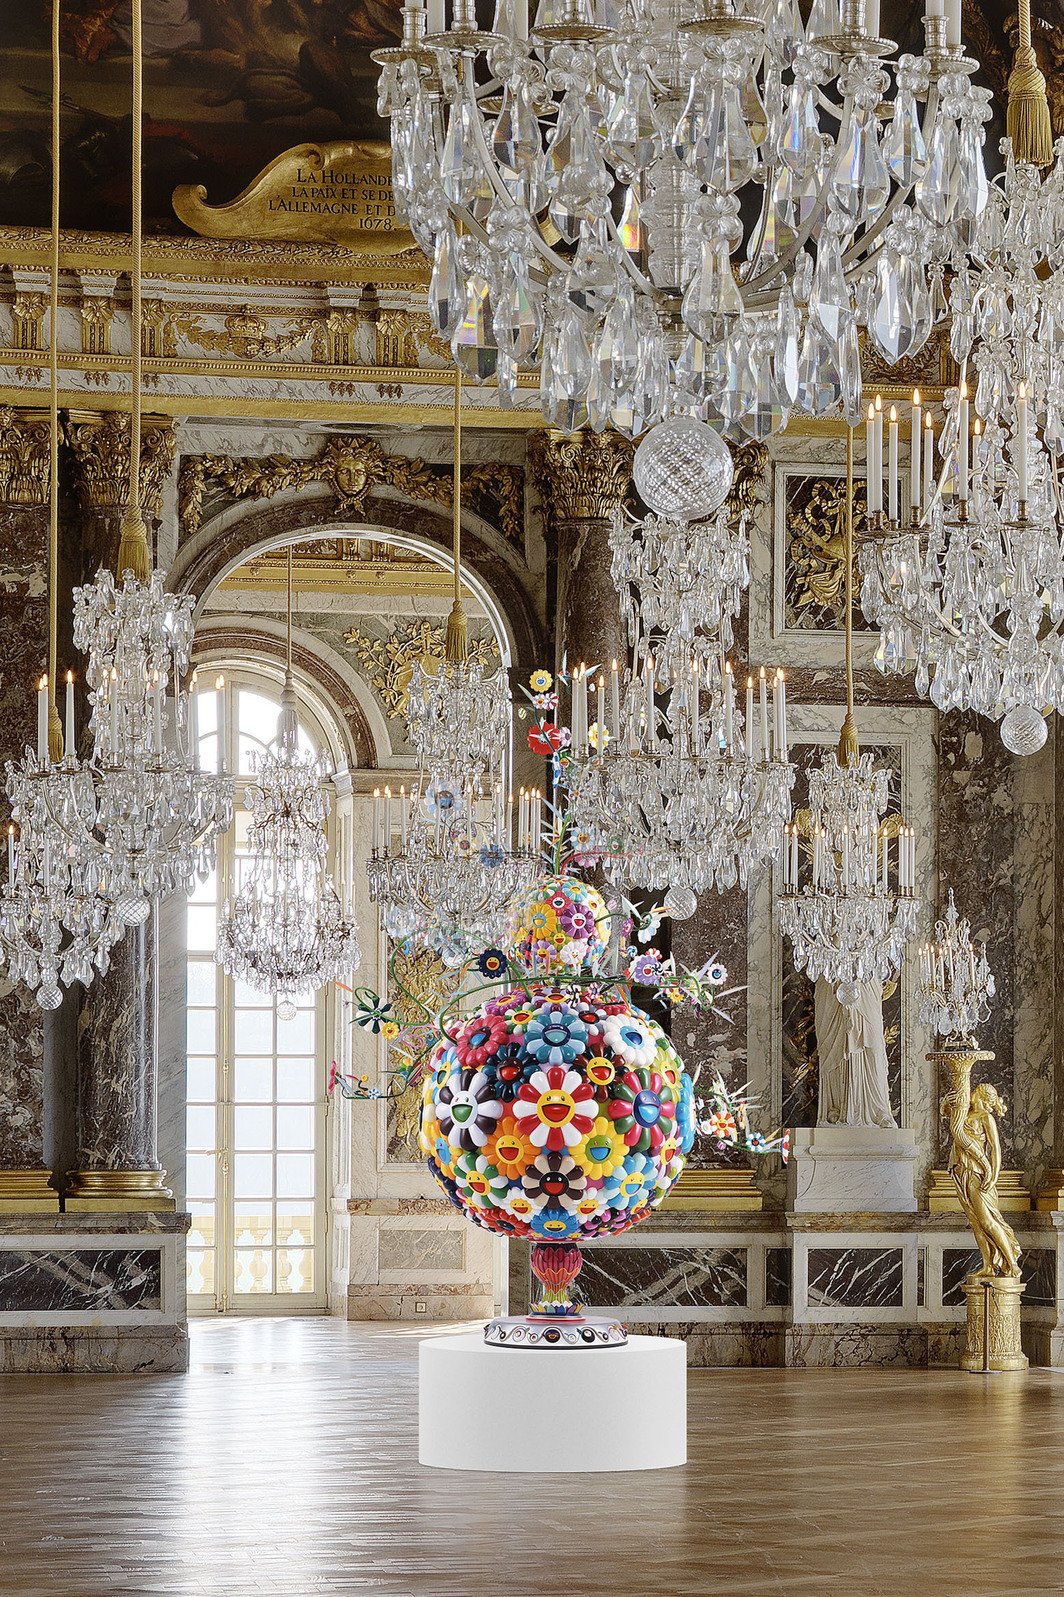 "Takahashi Murakami, Flower Matango, 2001-2006, fiberglass, iron, oil, acrylic, 10' 4"" x 6' 8"" x 8' 7"". Montage of the work in Galerie des Glaces, Château de Versailles, France. Photo: Florian Kleinefenn."